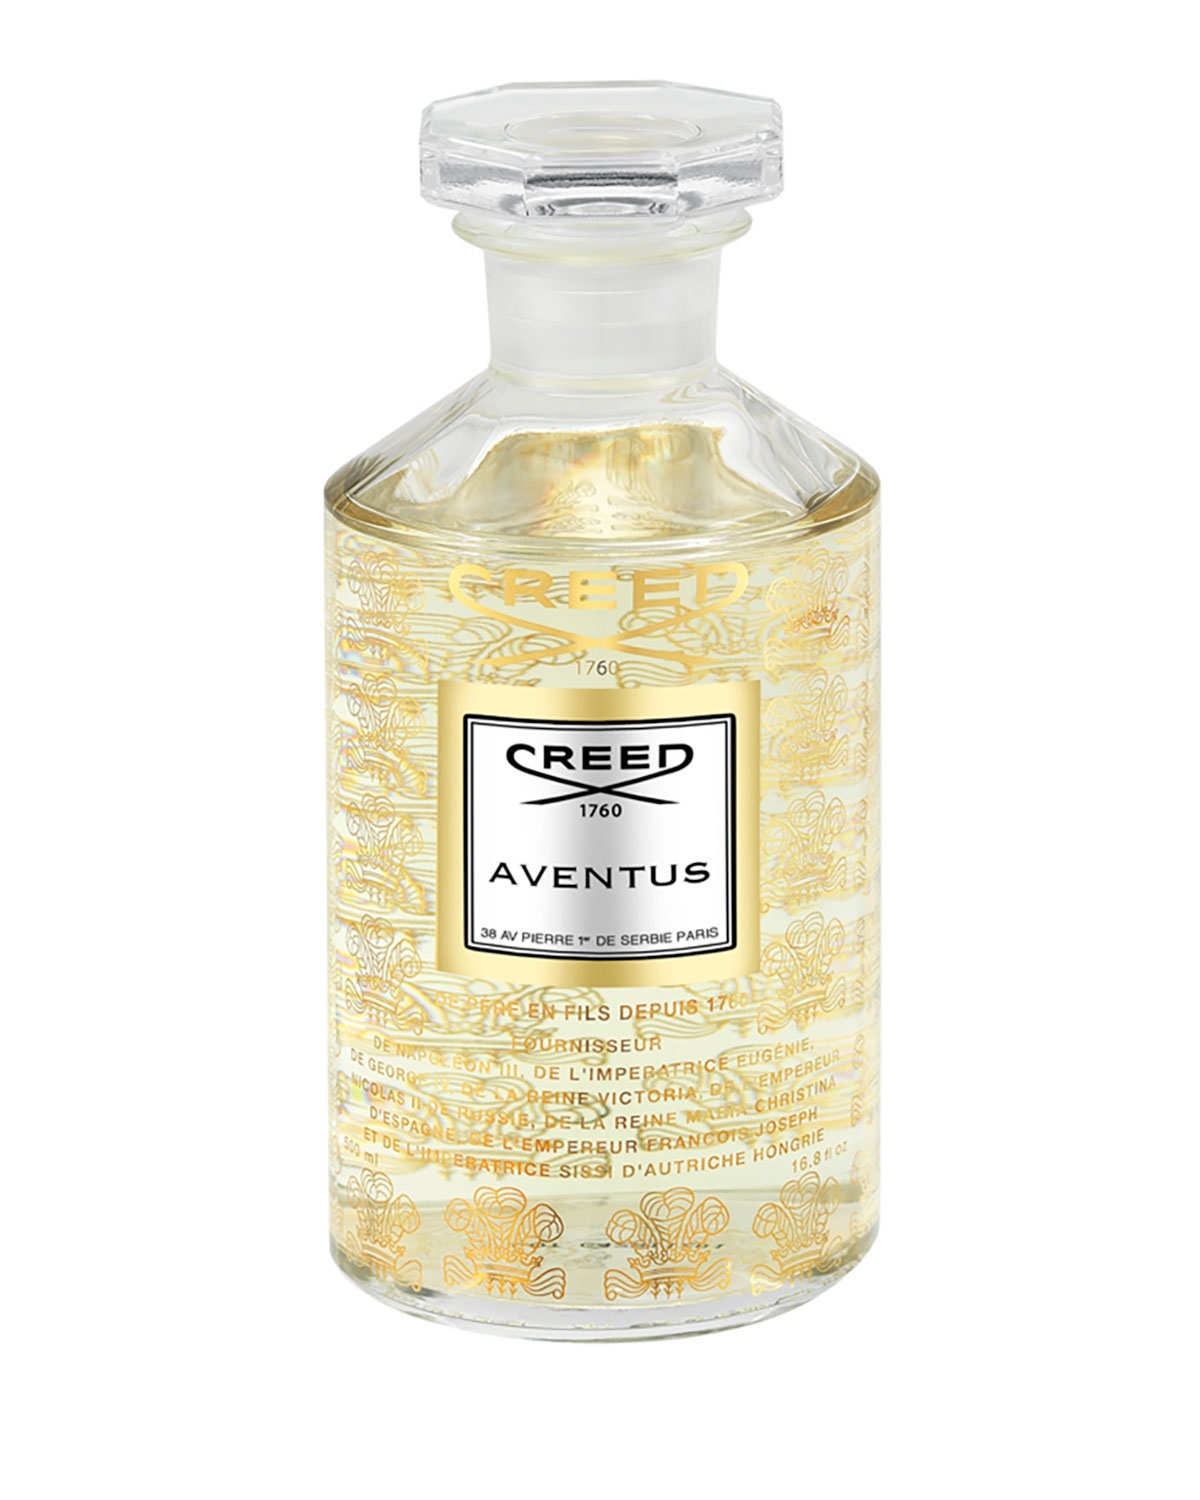 CREED 17 oz. Aventus